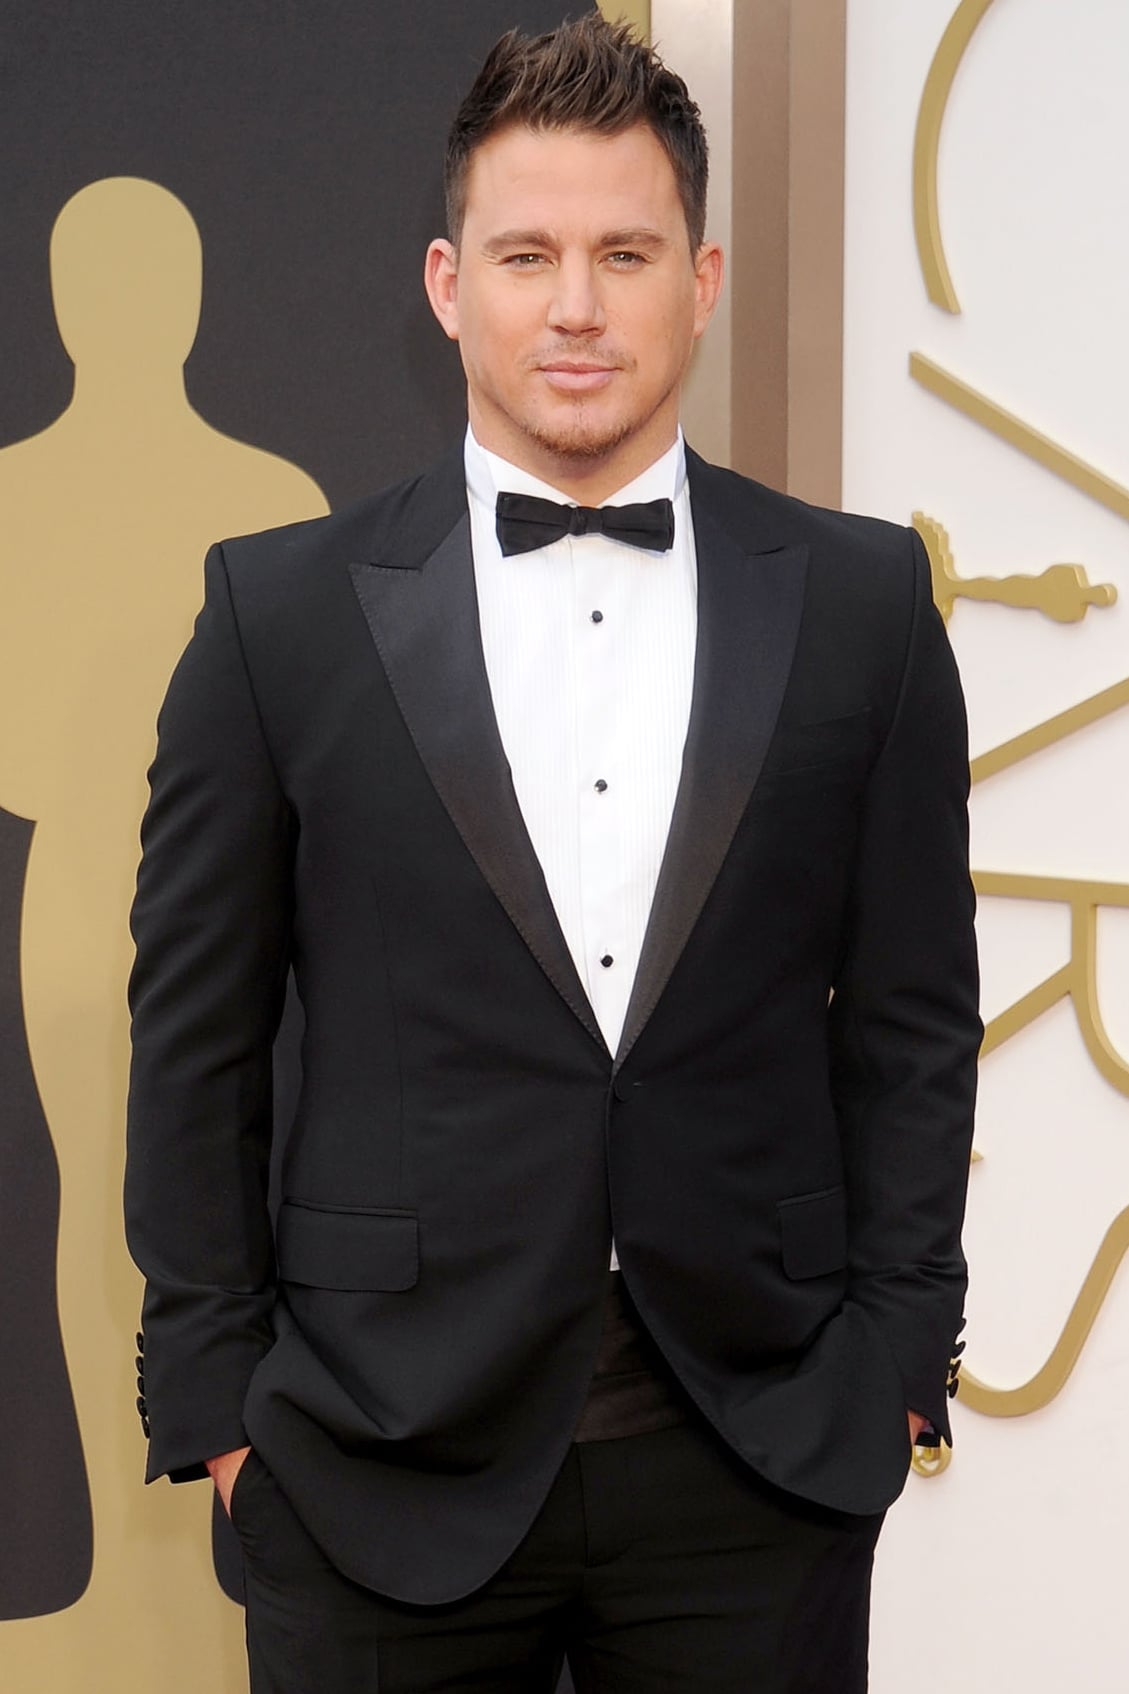 Channing Tatum will star in and produce an untitled '70s-era thriller about a family man who risks everything to go undercover and take down a mob boss.